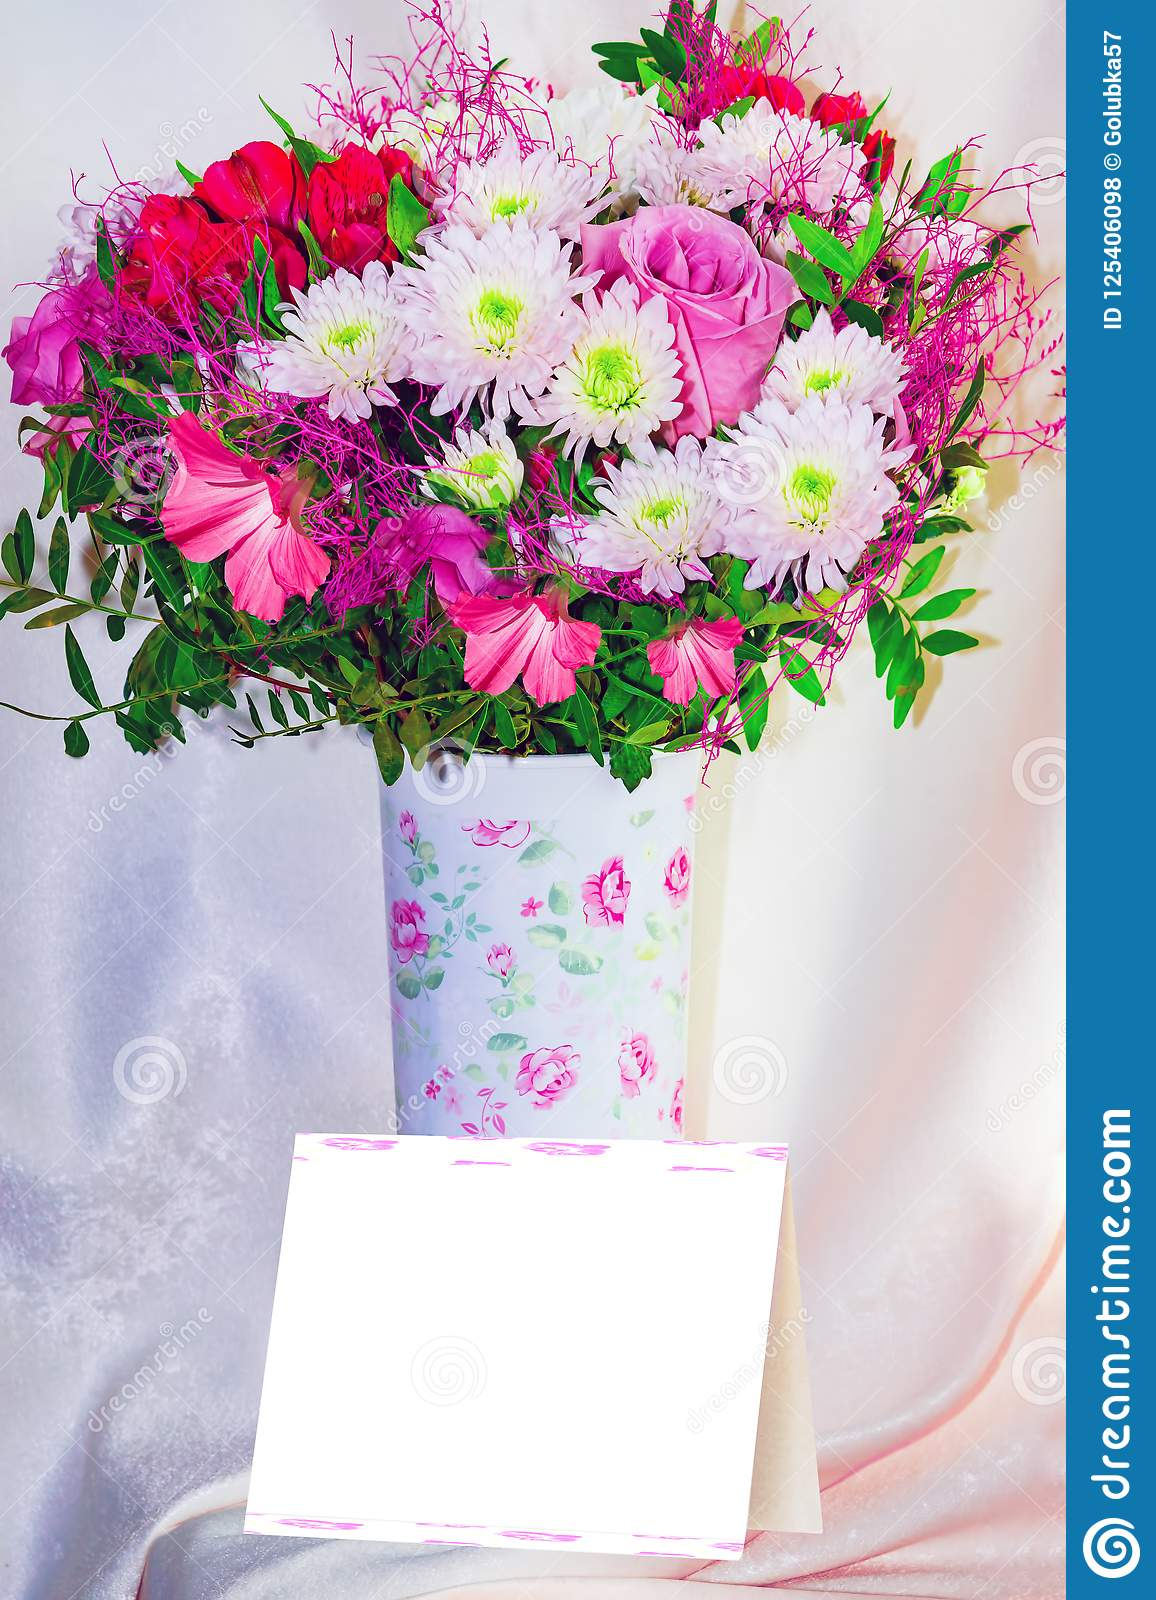 Bouquet Of Pink And White Flowers In A Light Tall Vase On A